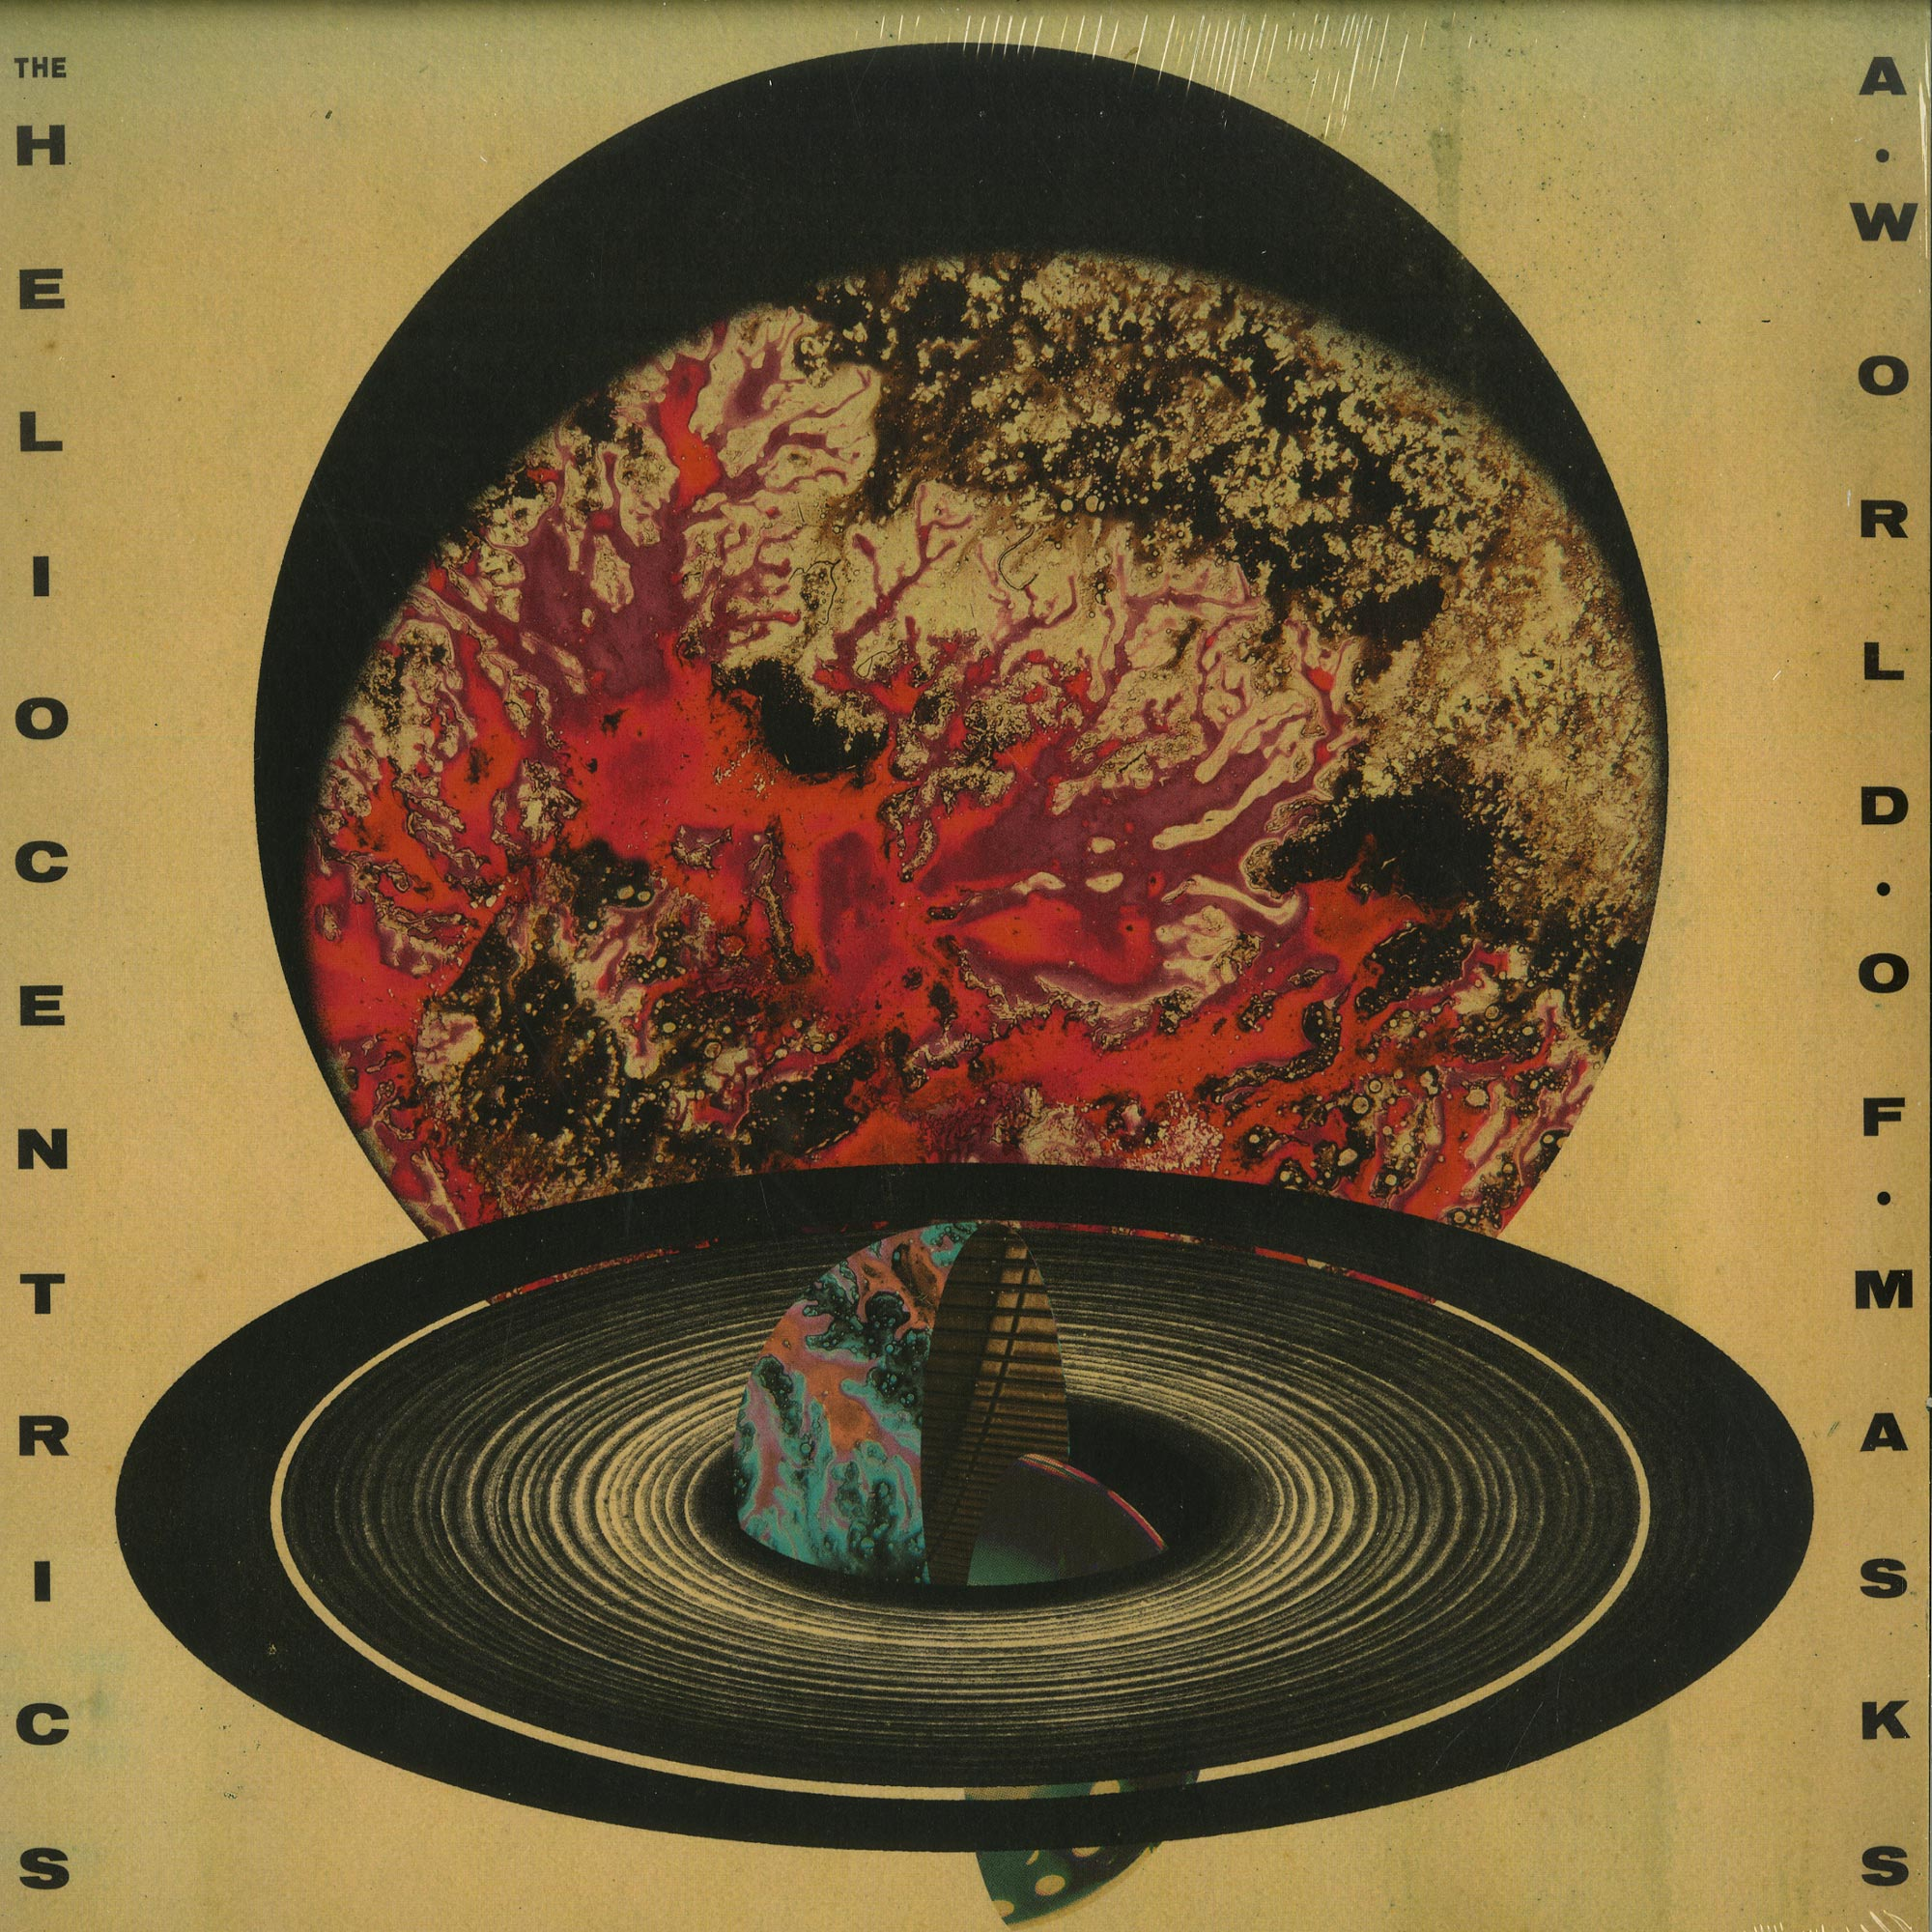 The Heliocentrics - A WORLD OF MASKS